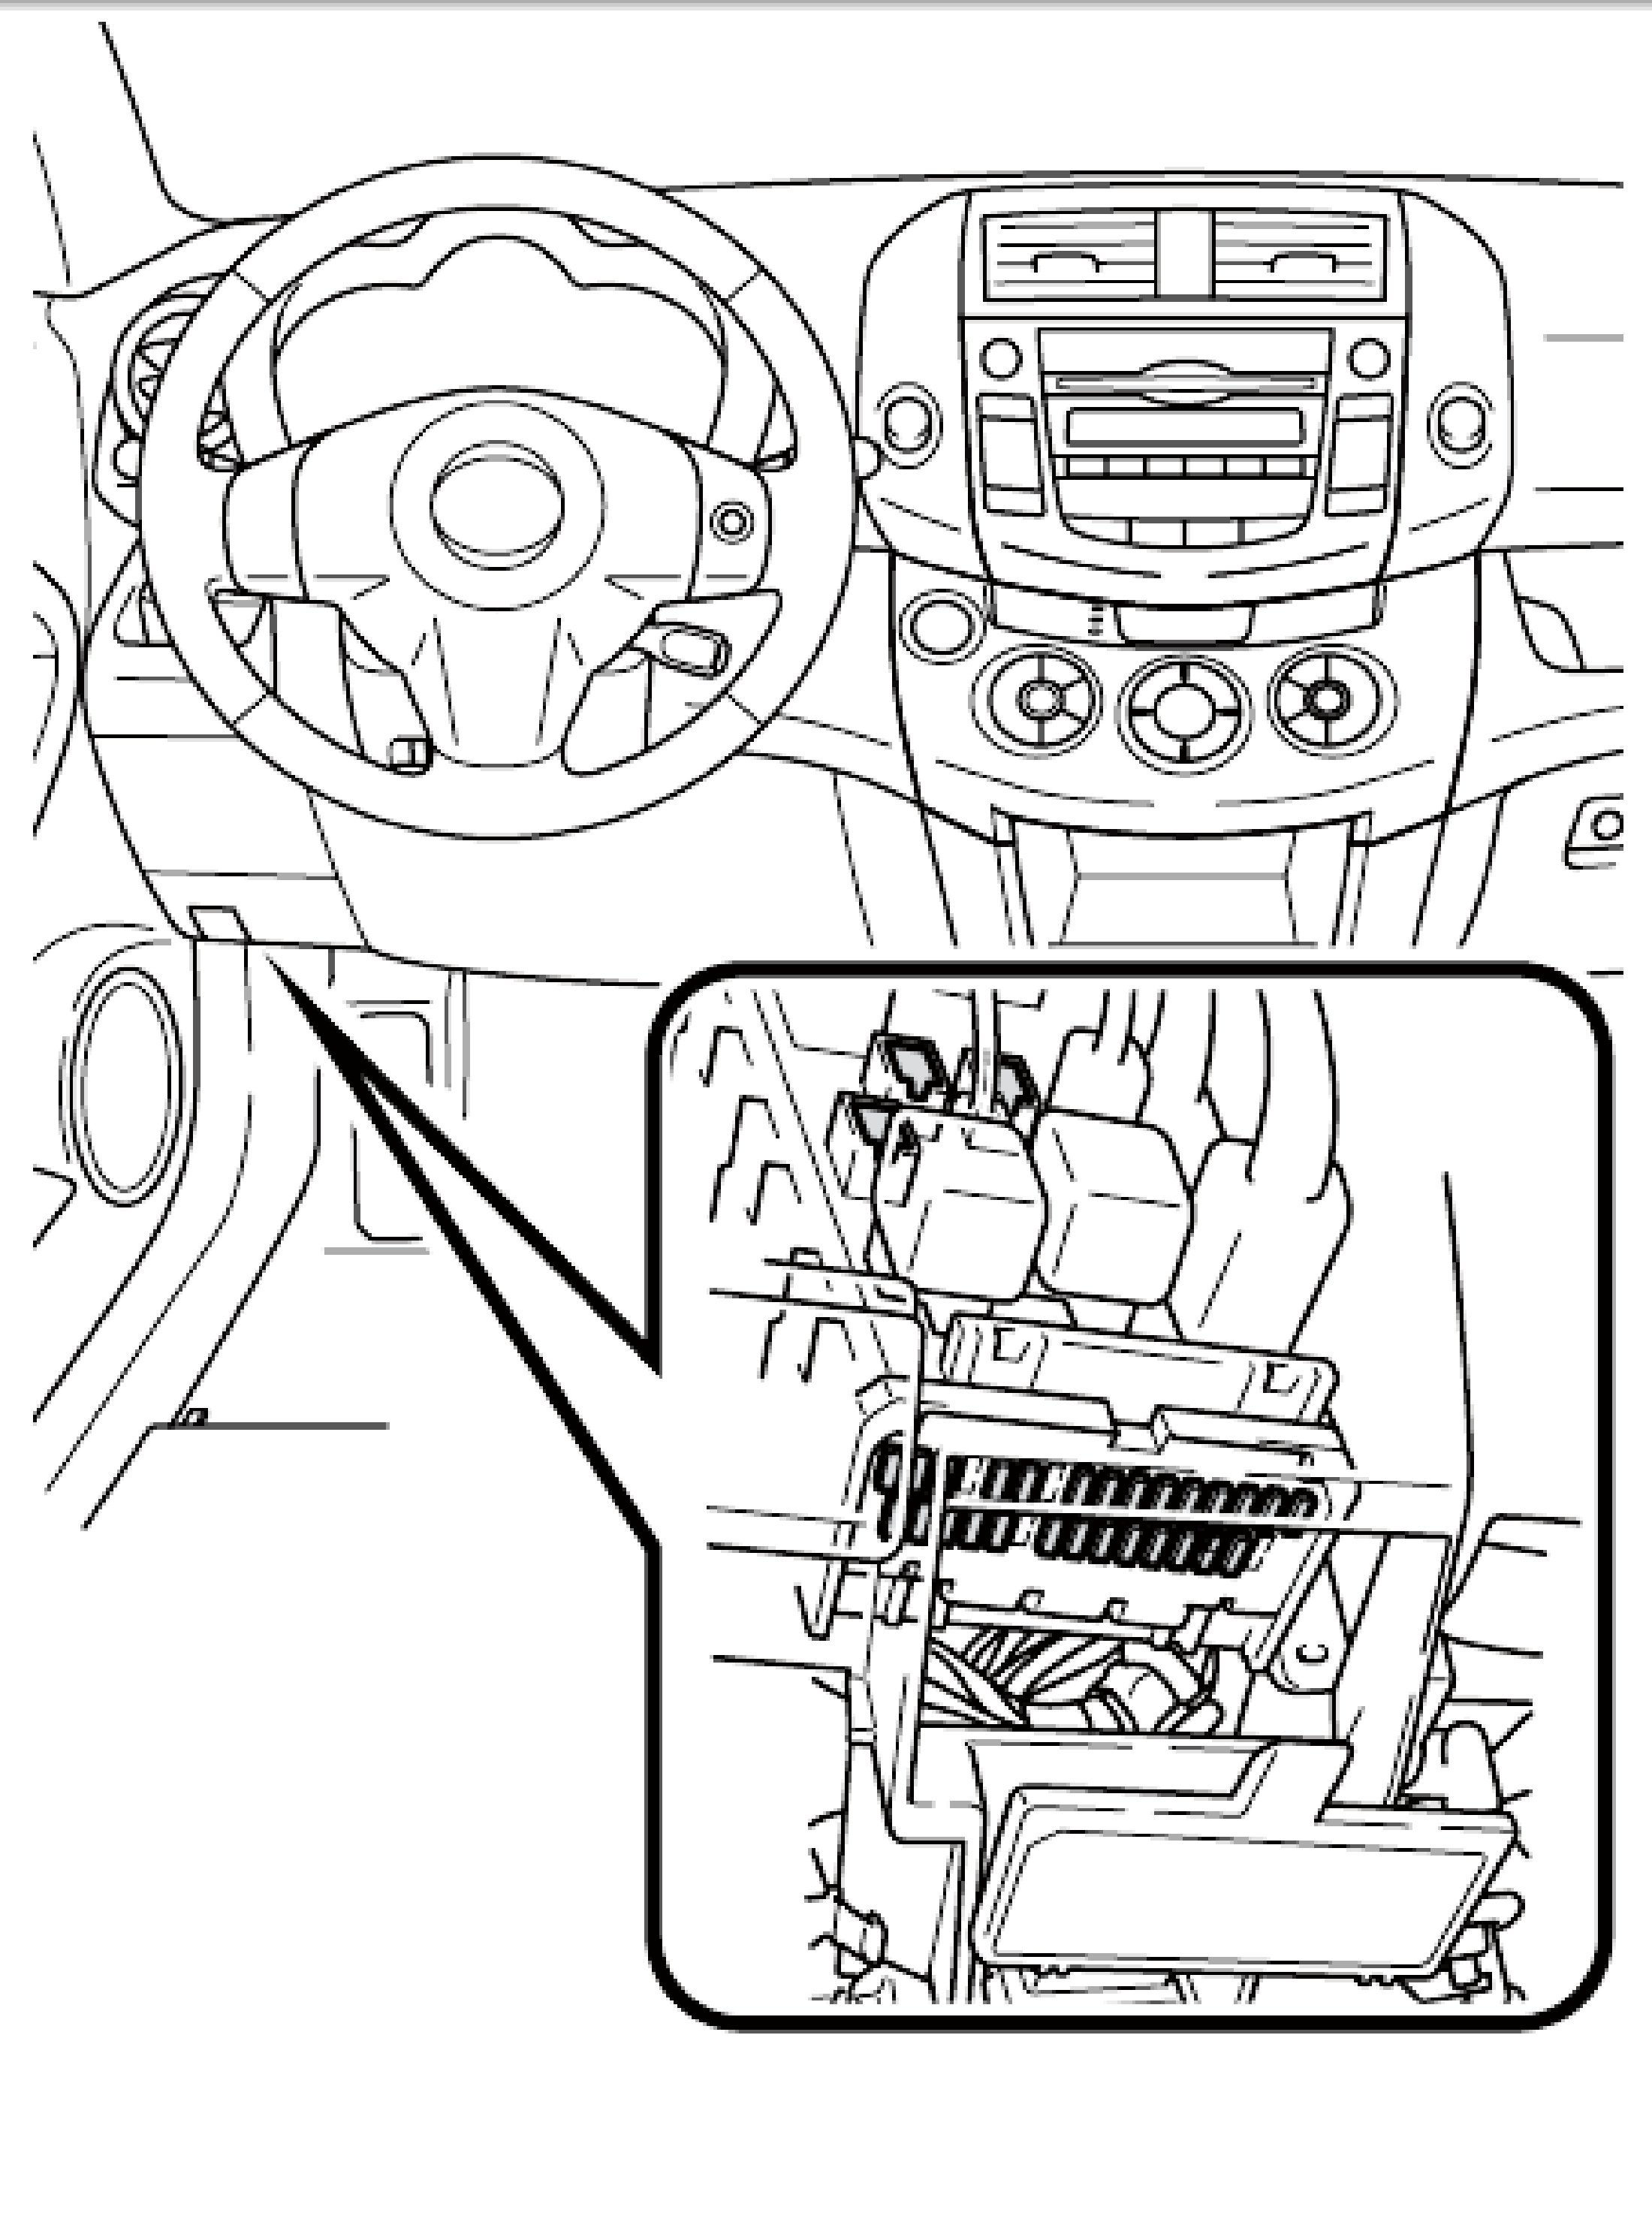 2005 TOYOTA AVALON FUSE BOX    DIAGRAM     Auto Electrical